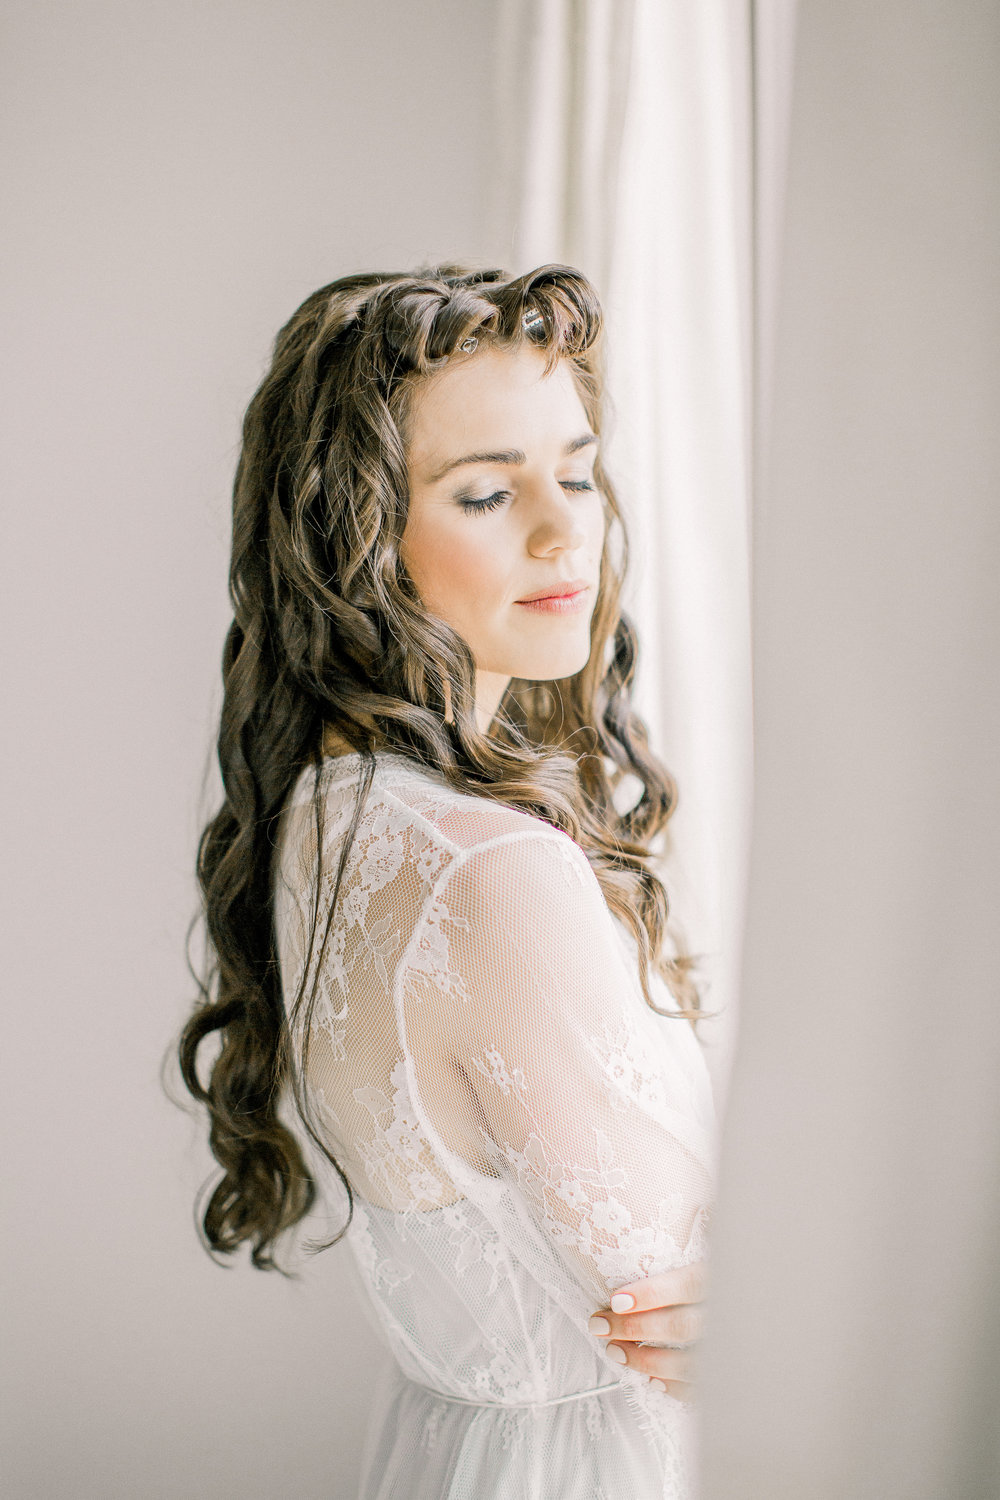 gauteng wedding photographer clareece smit004.jpg